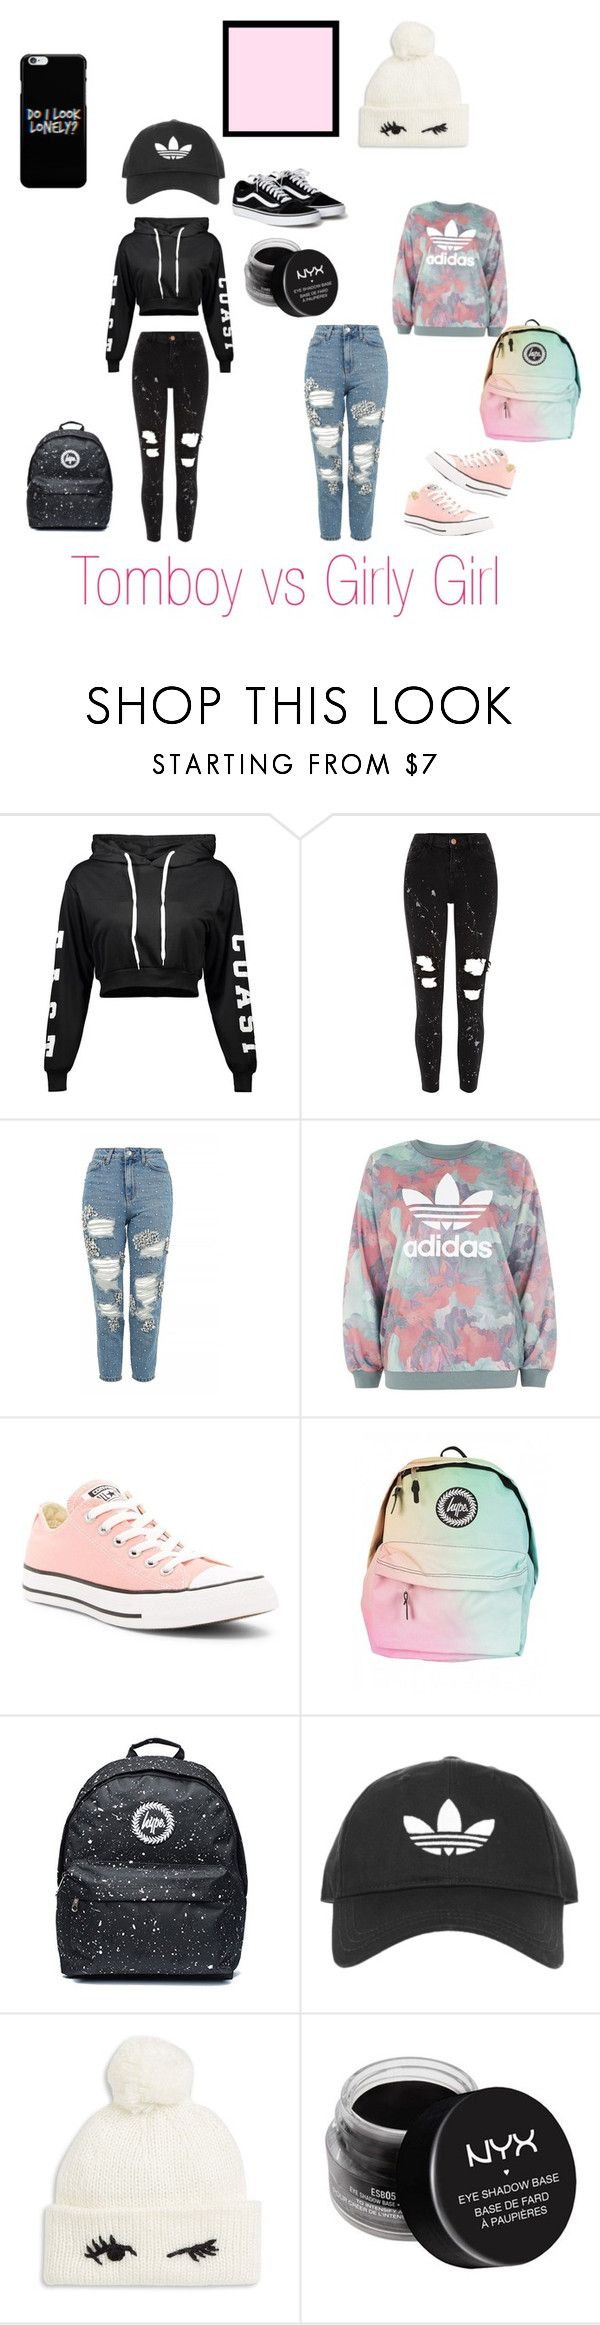 """Tomboy vs Girly Girl"" by katsquad ❤ liked on Polyvore featuring River Island, Topshop, adidas, Converse, Kate Spade and NYX"